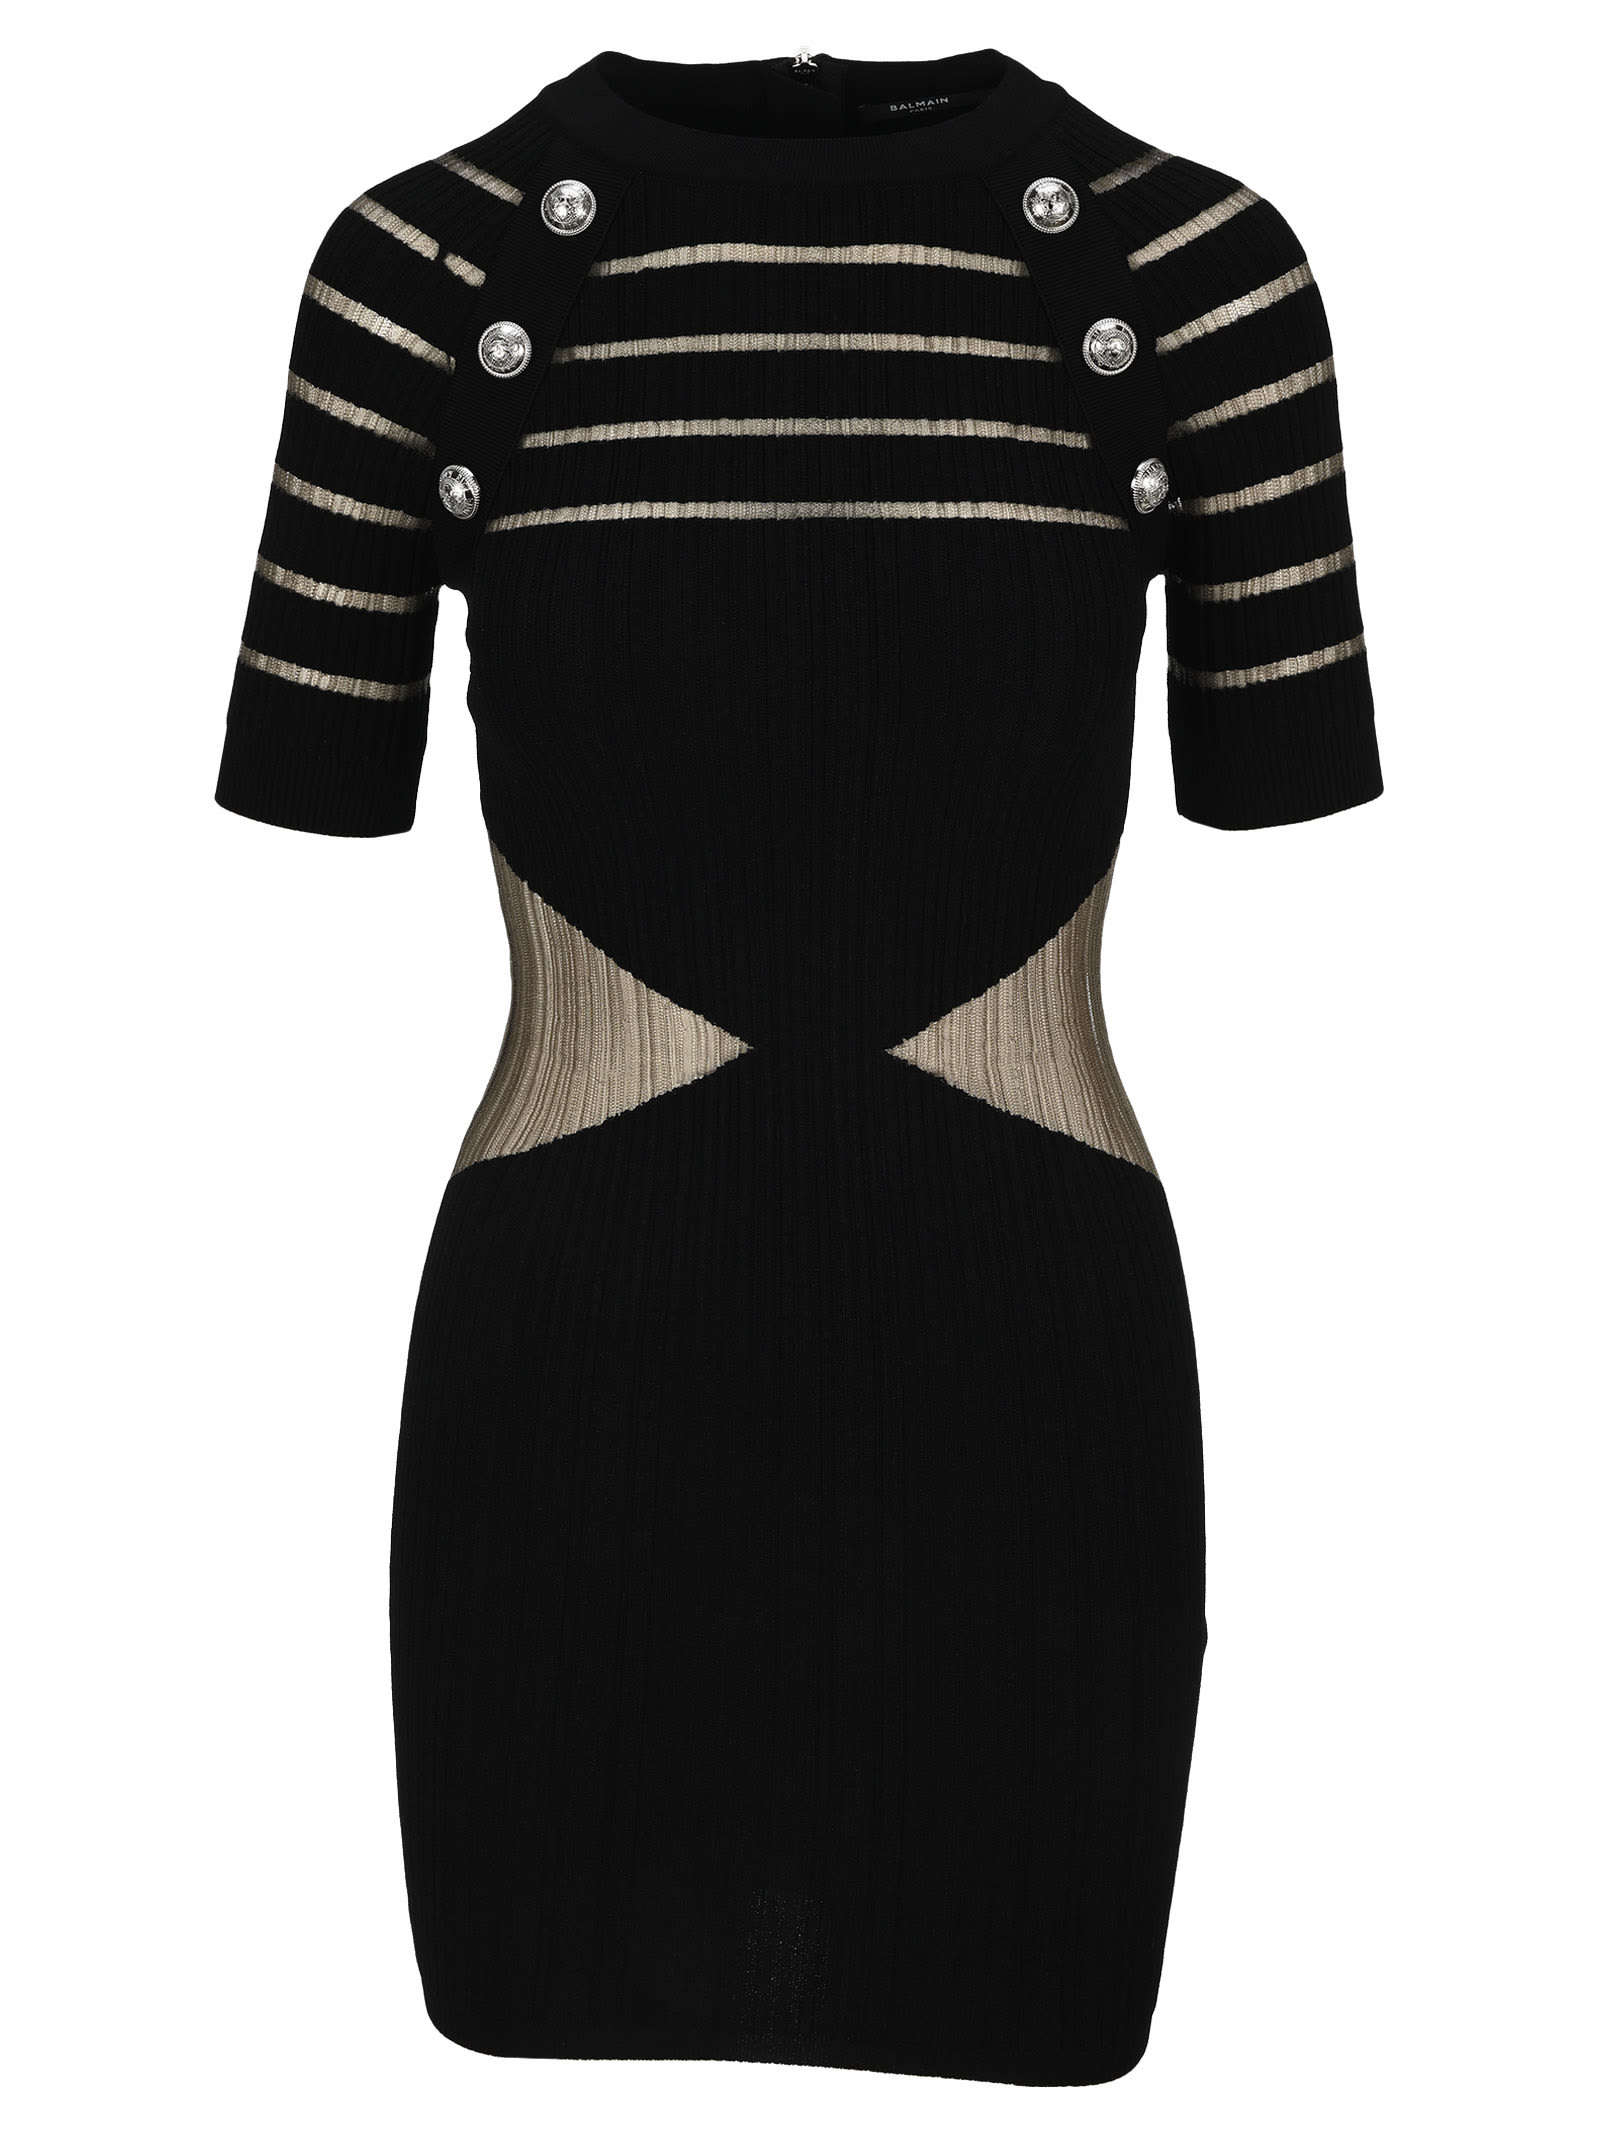 Buy Balmain Knit Dress With Sheer Panels online, shop Balmain with free shipping